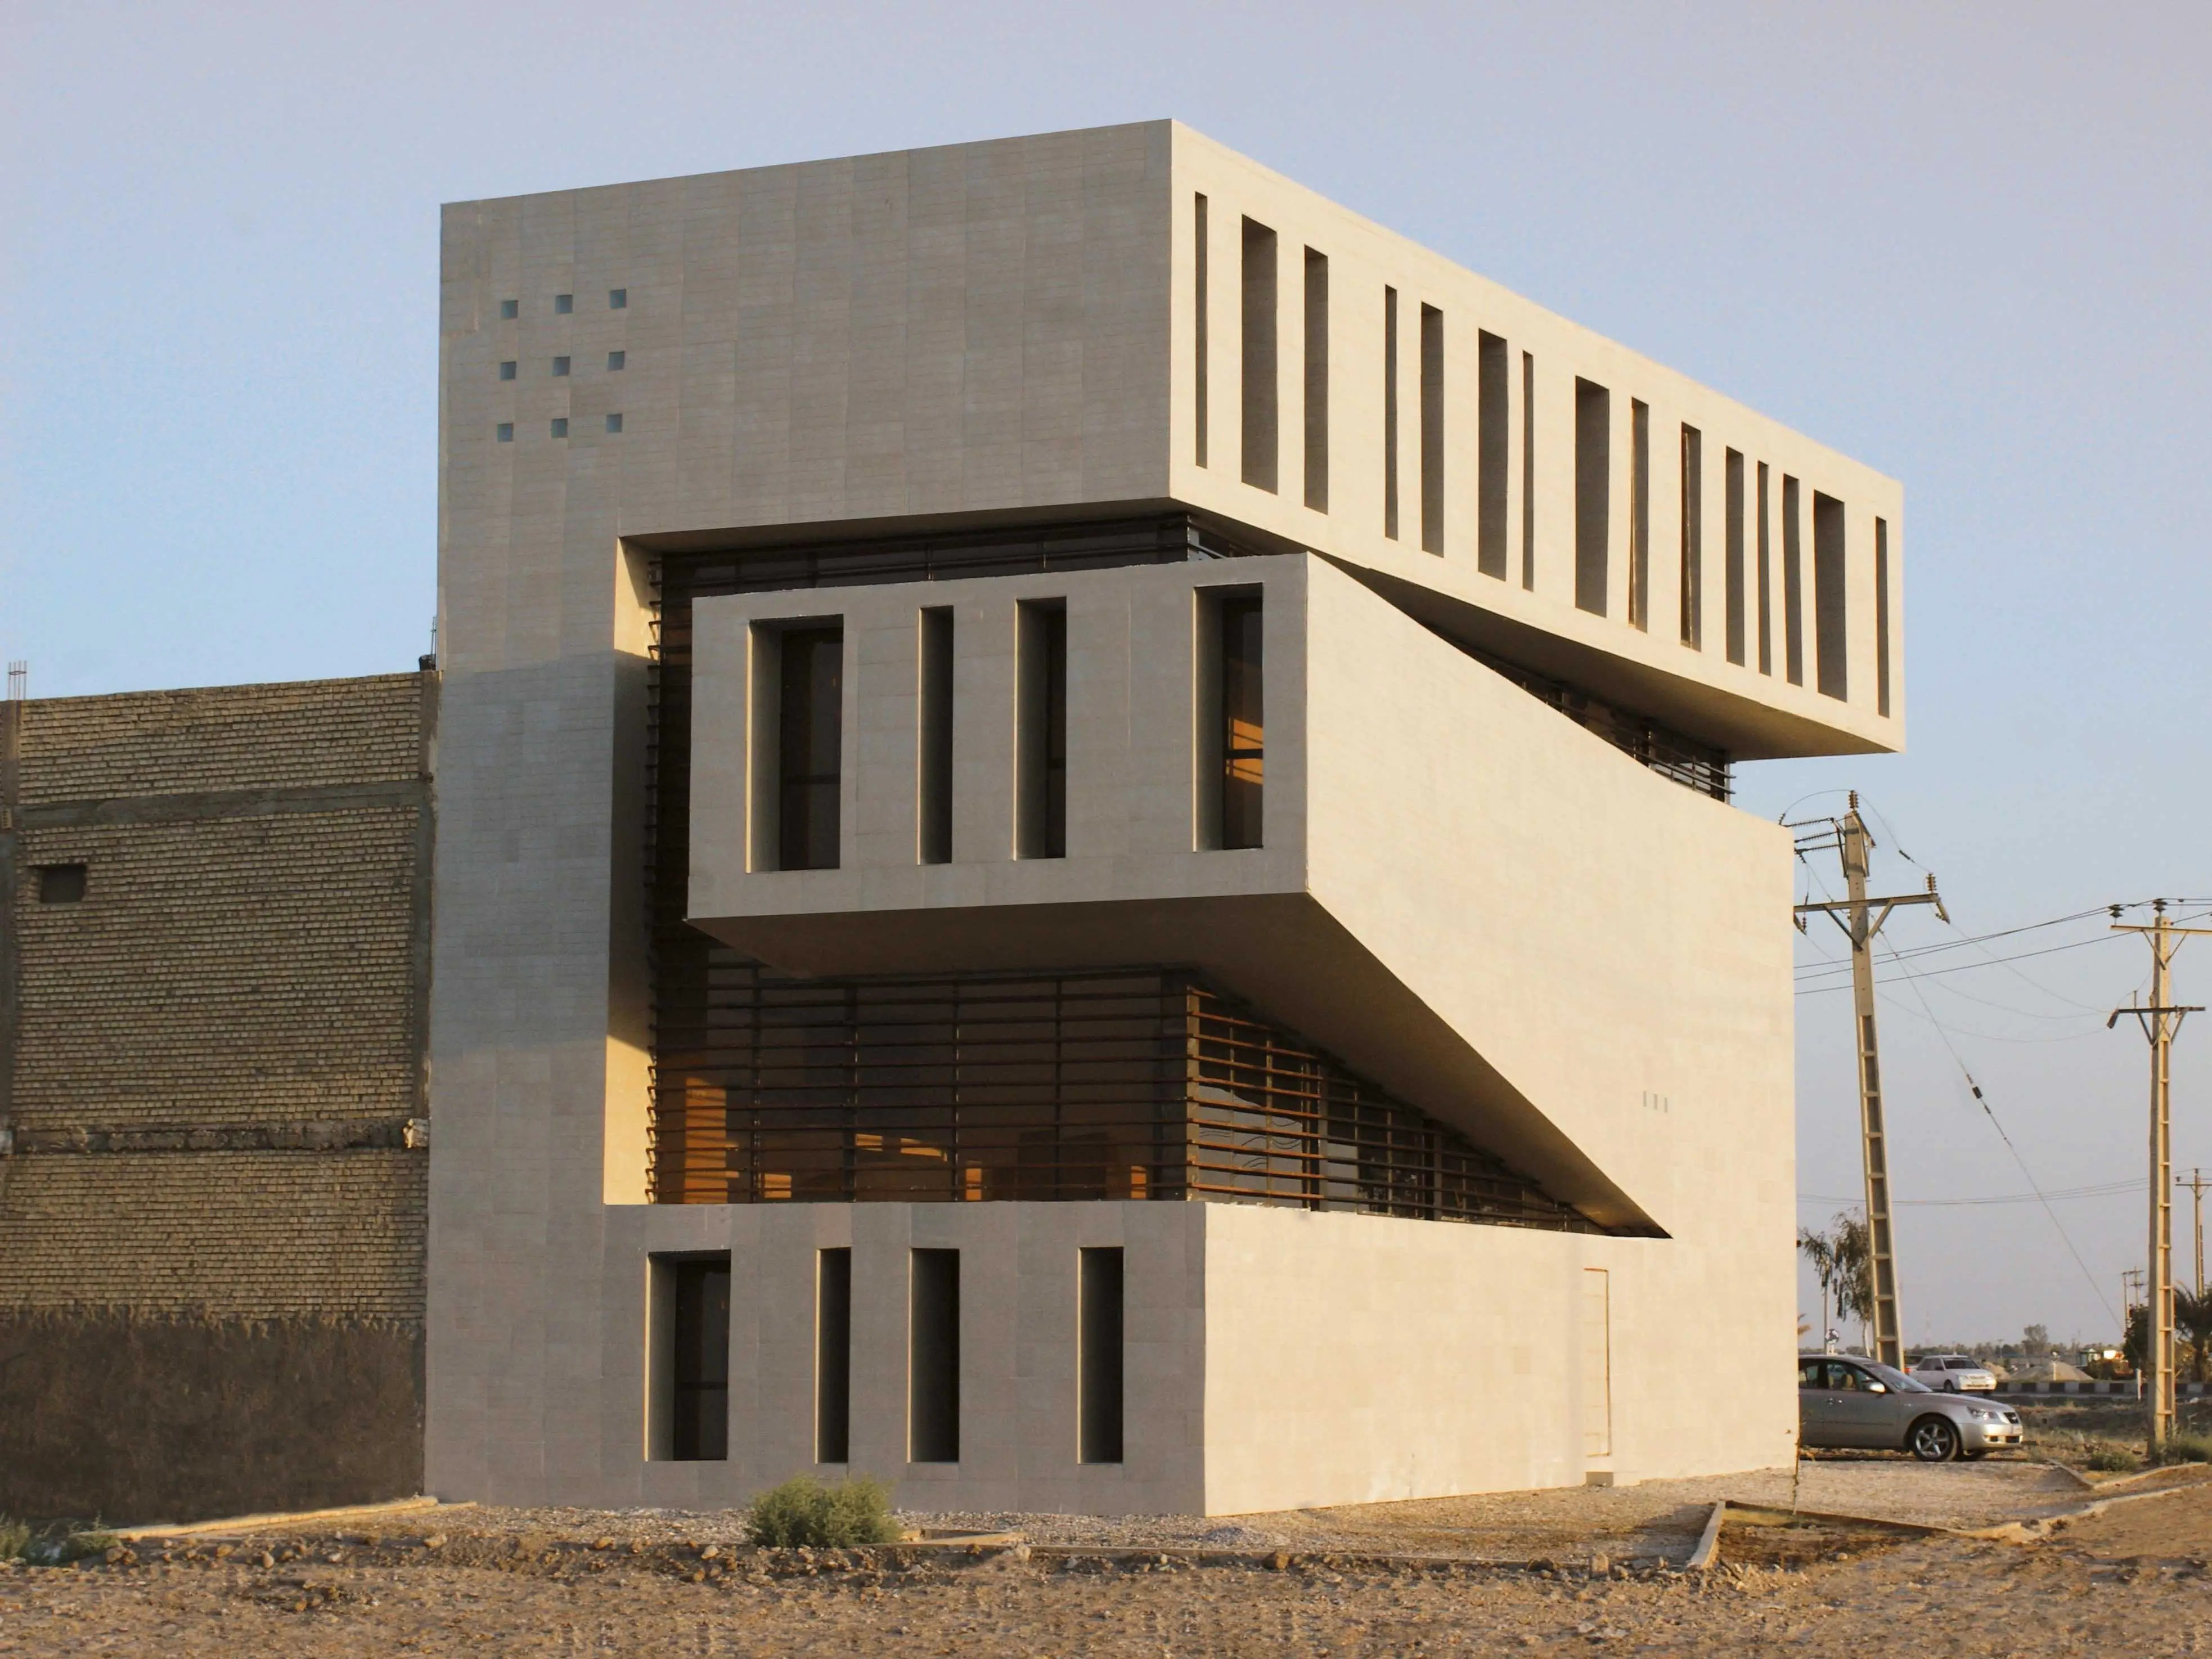 Abadan Residential Apartment by Farshad Mehdizadeh Architects, Abadan, Iran (shortlisted in House)